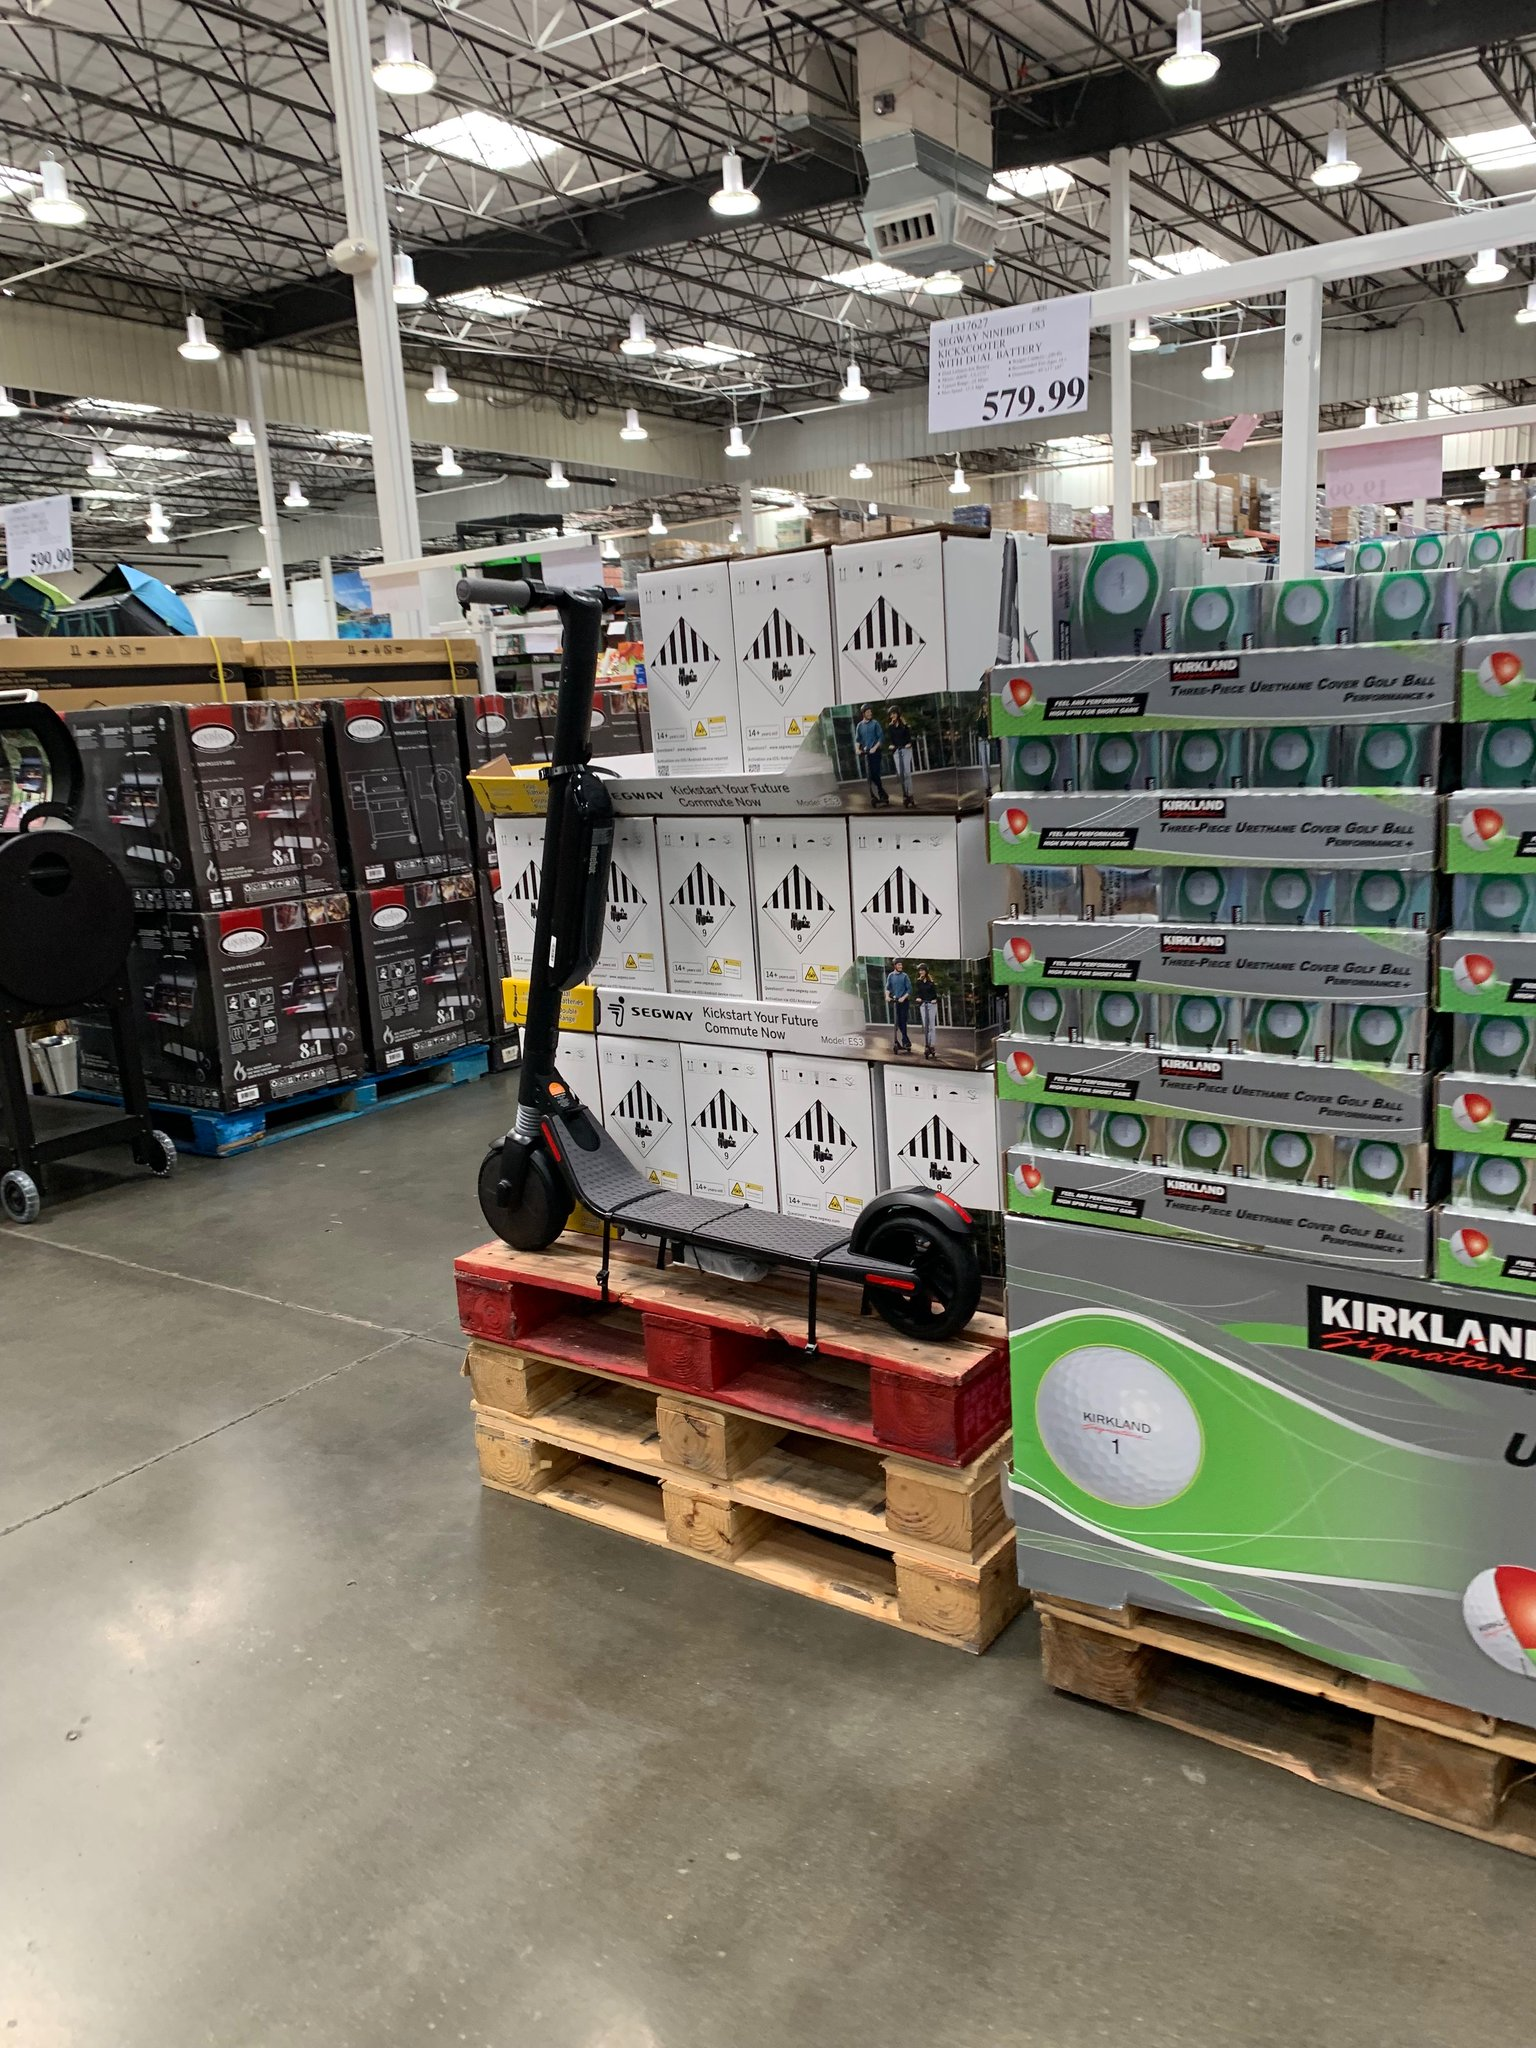 Segway On Twitter The Exclusive Ninebot By Segway Kickscooter Es3 Model Just Launched In Costco And Are Now Available In Stores And Online At Https T Co Ptugfnyowt Find It At Your Local